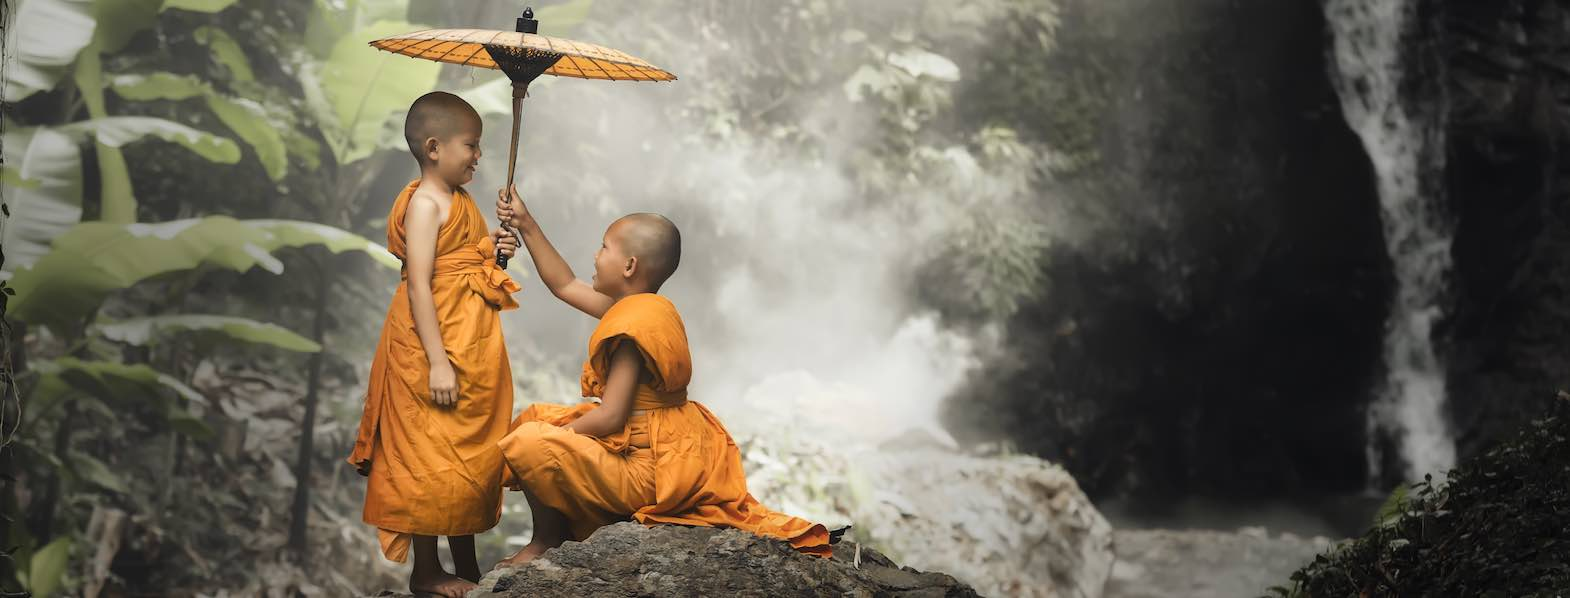 Two monks in the mountains